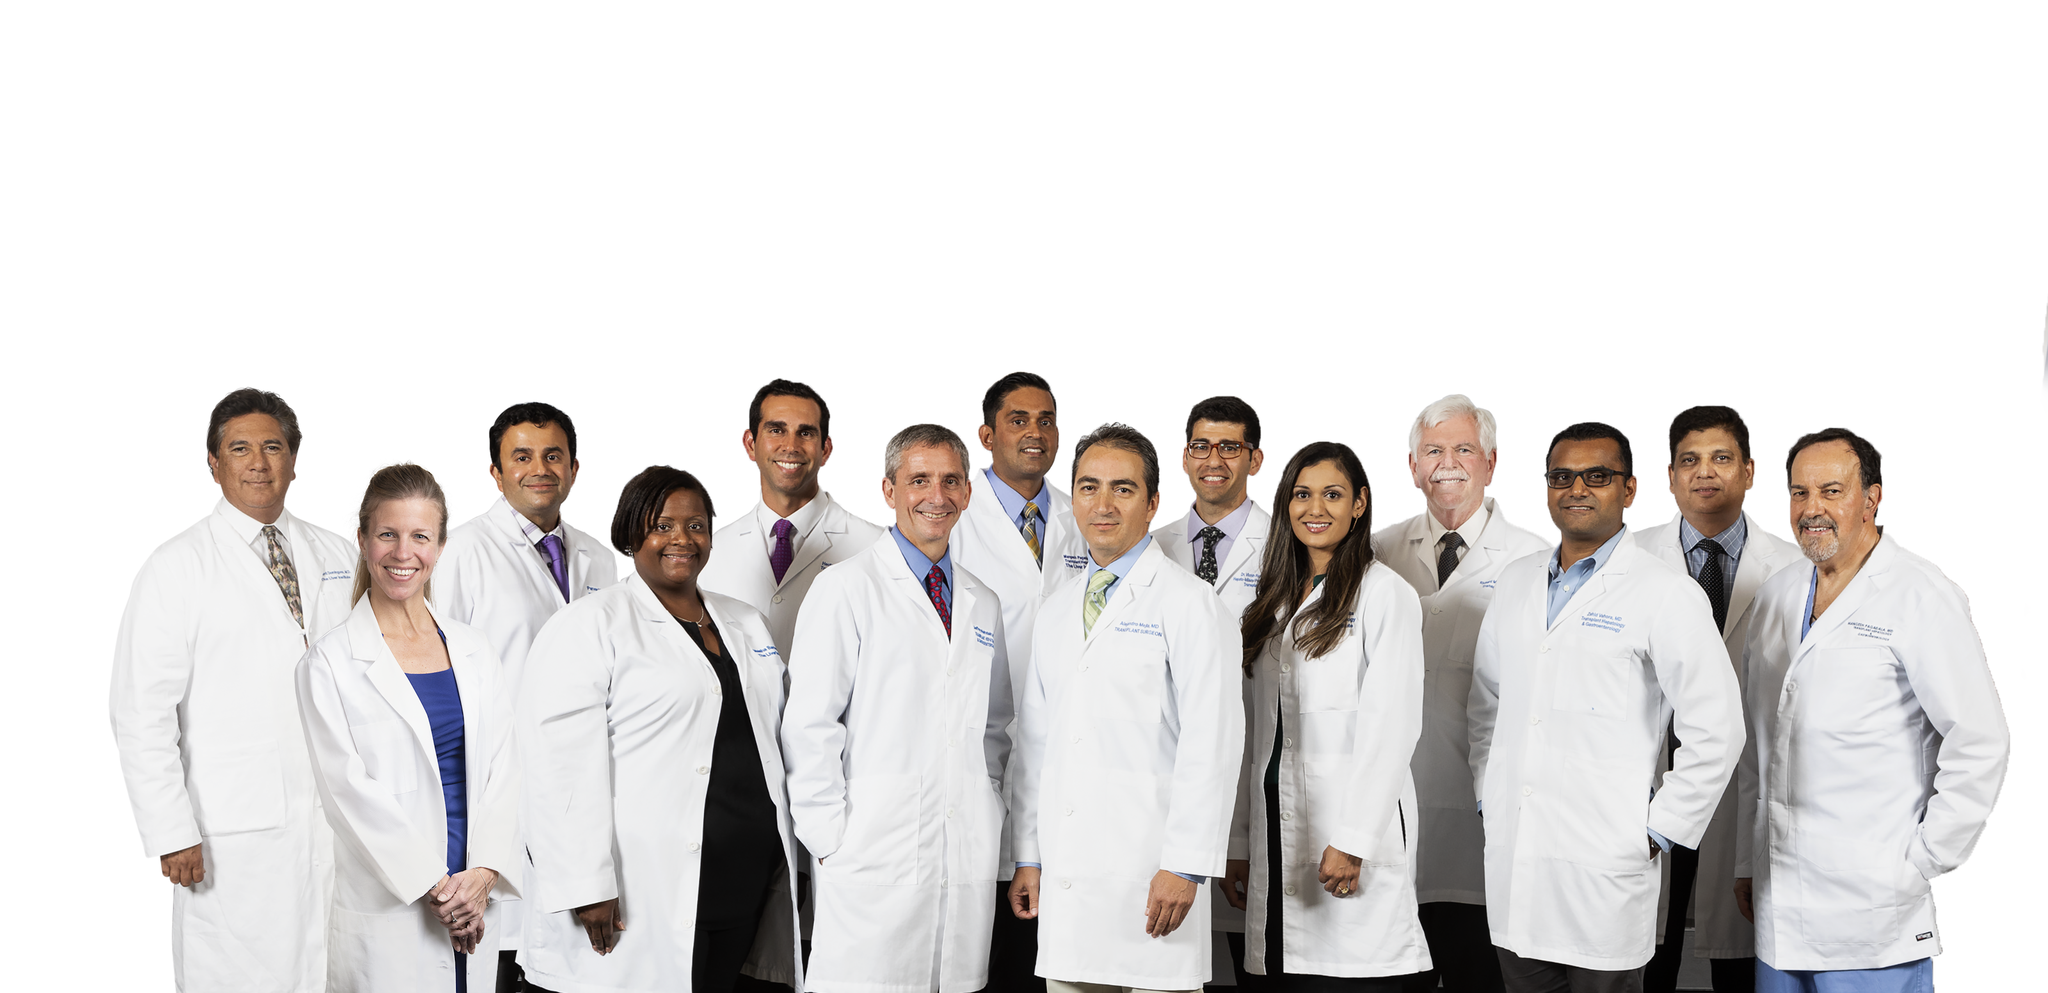 The independently practicing physicians of The Liver Institute,